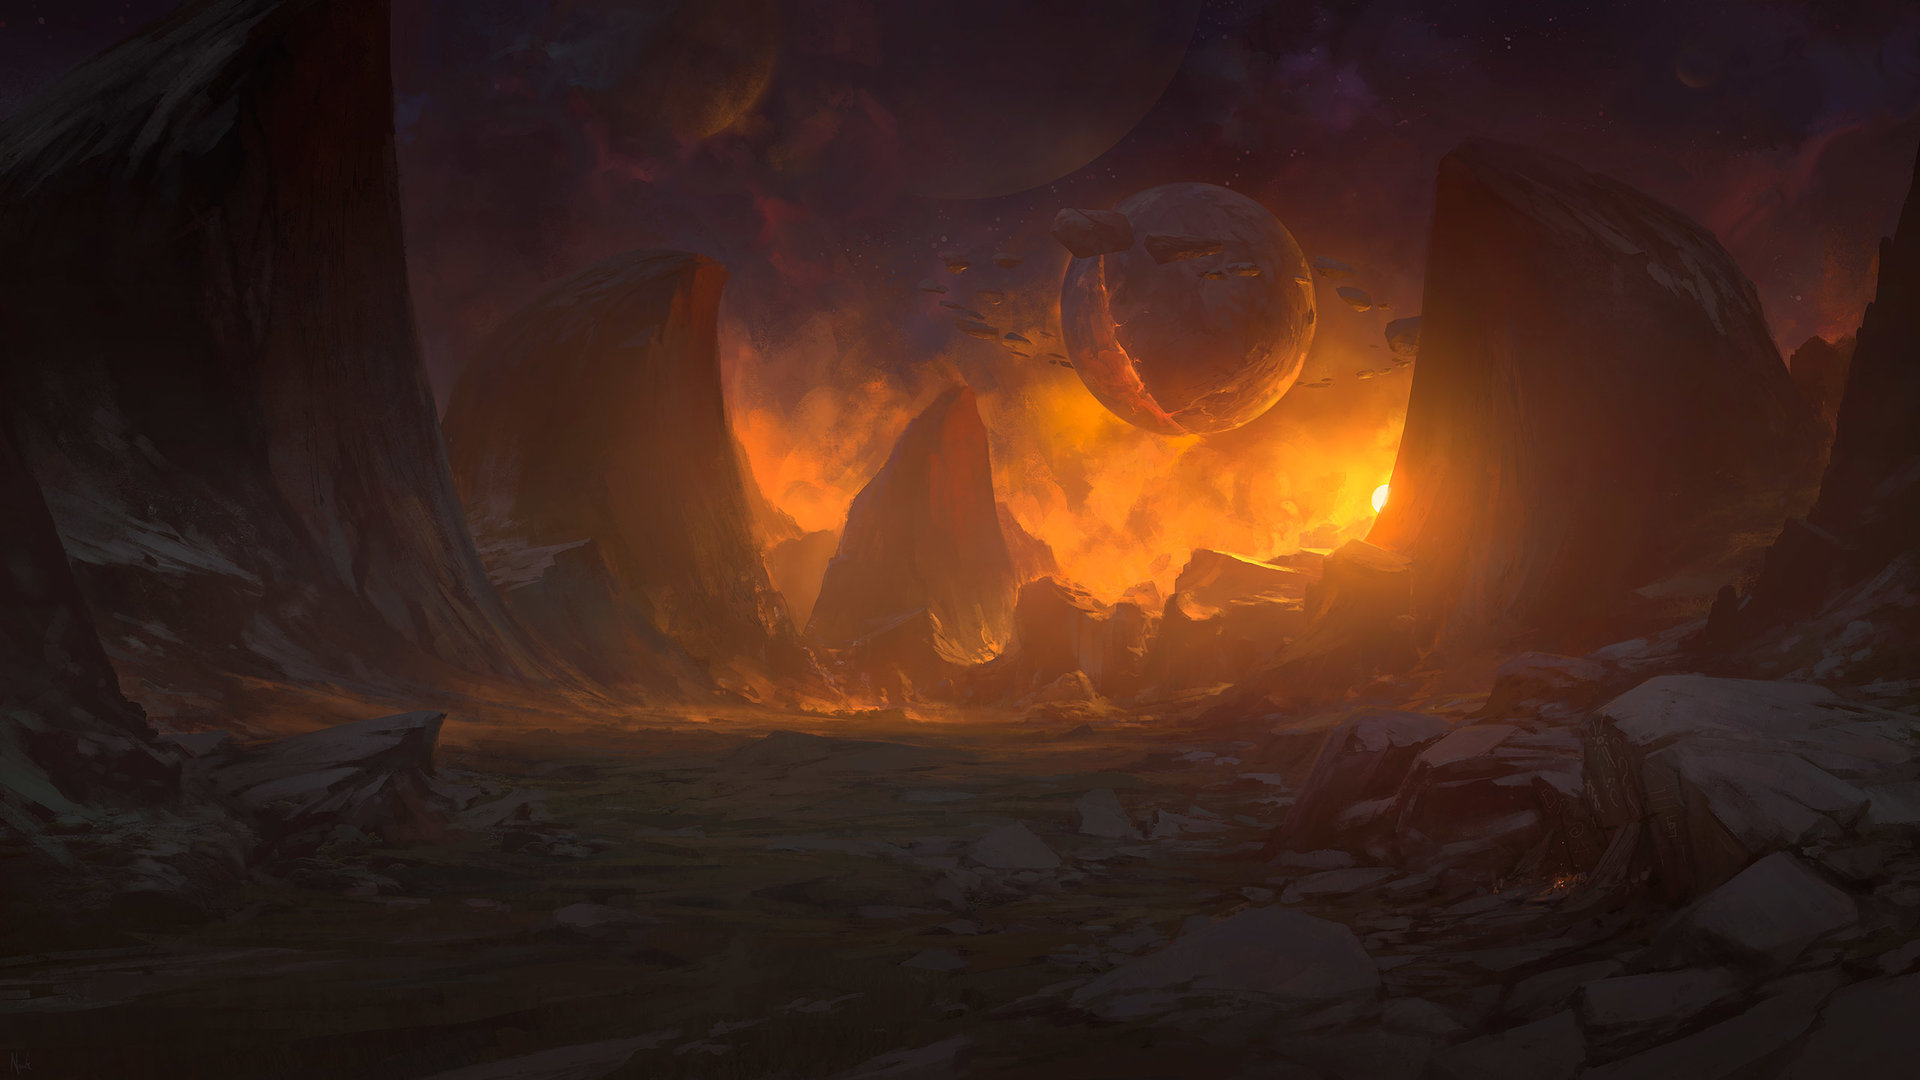 Noah Bradley Digital Painting Illustration A Tear for Every Hero in Hell